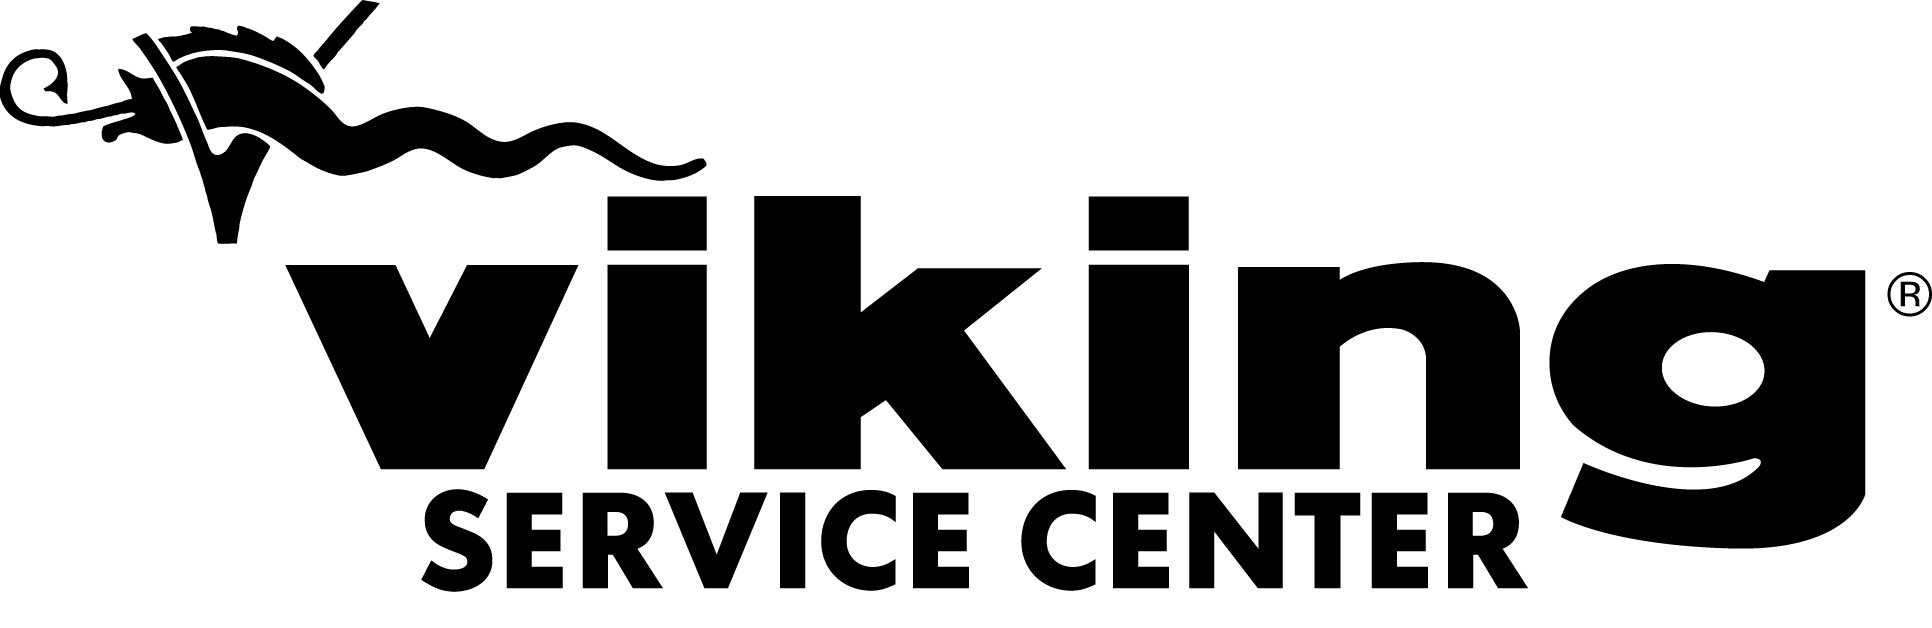 Viking service center logo